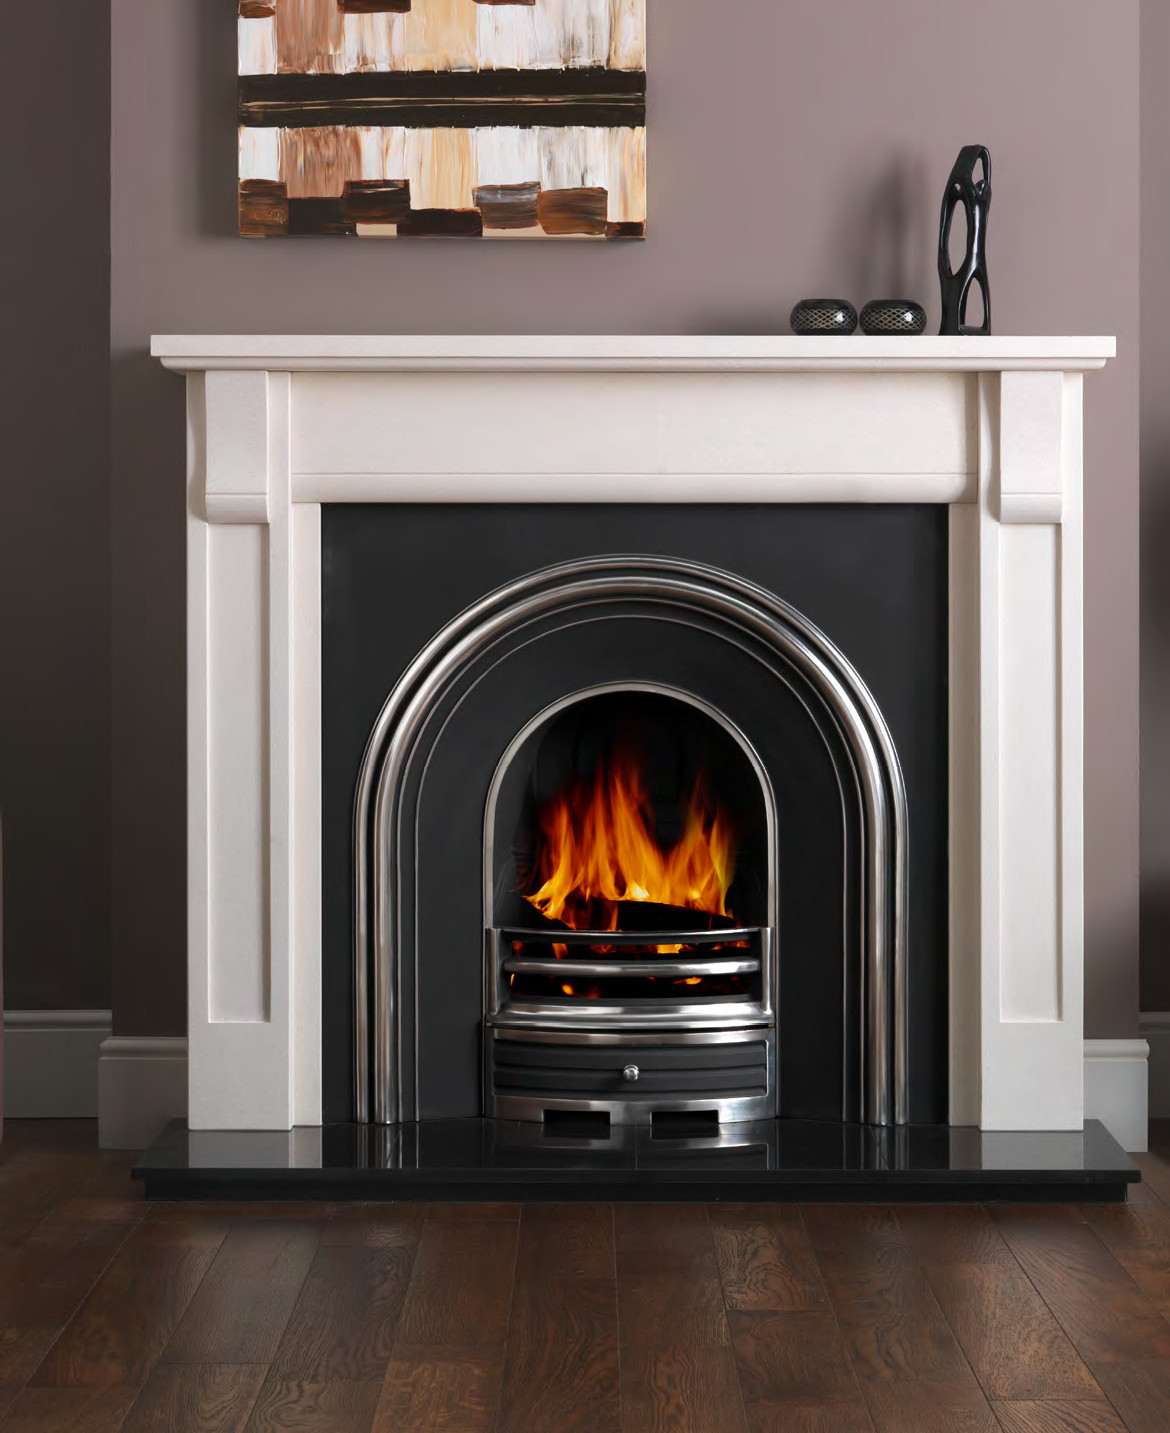 Penman Verona Flames Fireplaces Banbridge Belfast